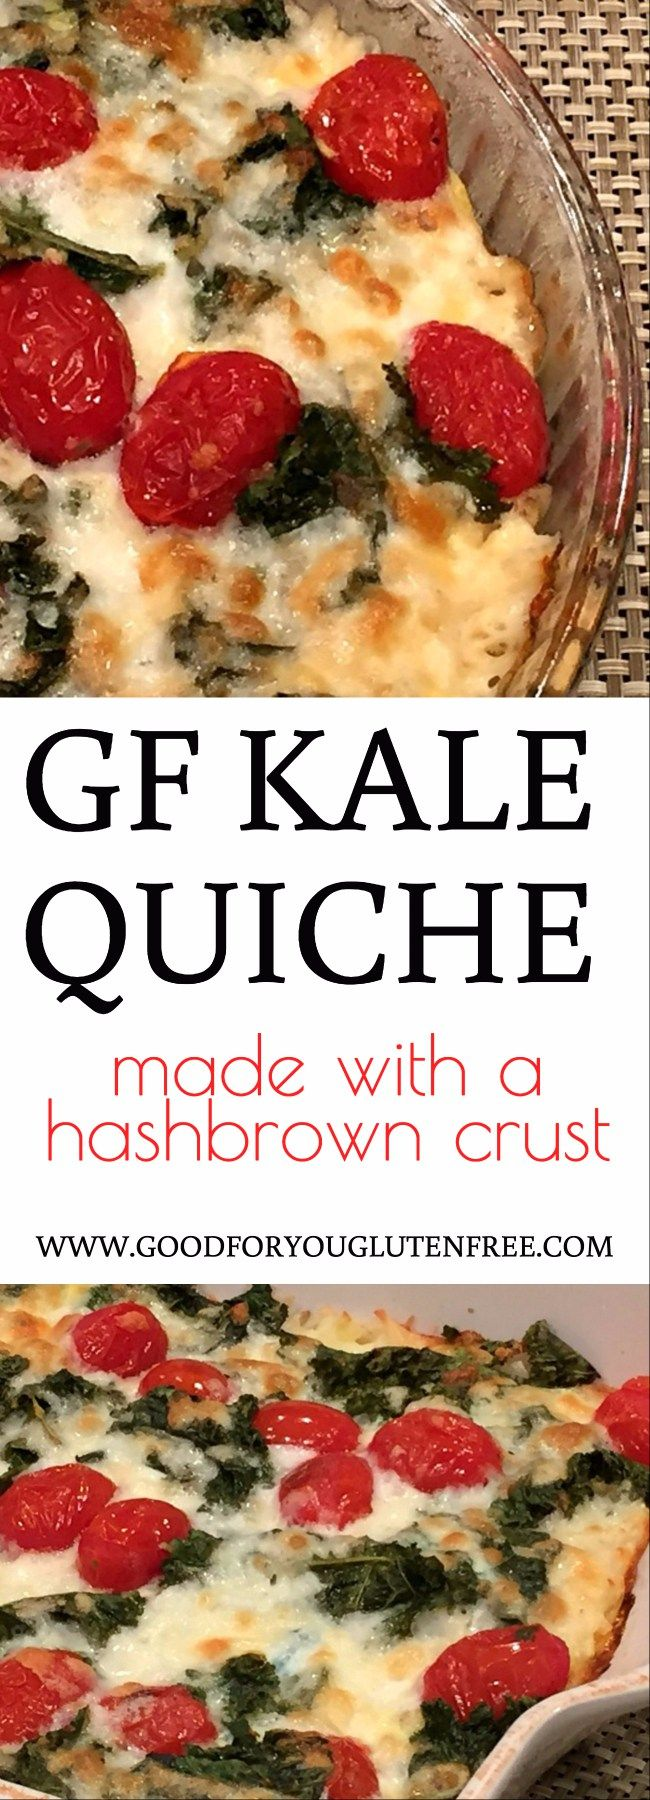 Gluten-Free Kale Quiche with Hashbrown Crust Recipe - Good For You Gluten Free